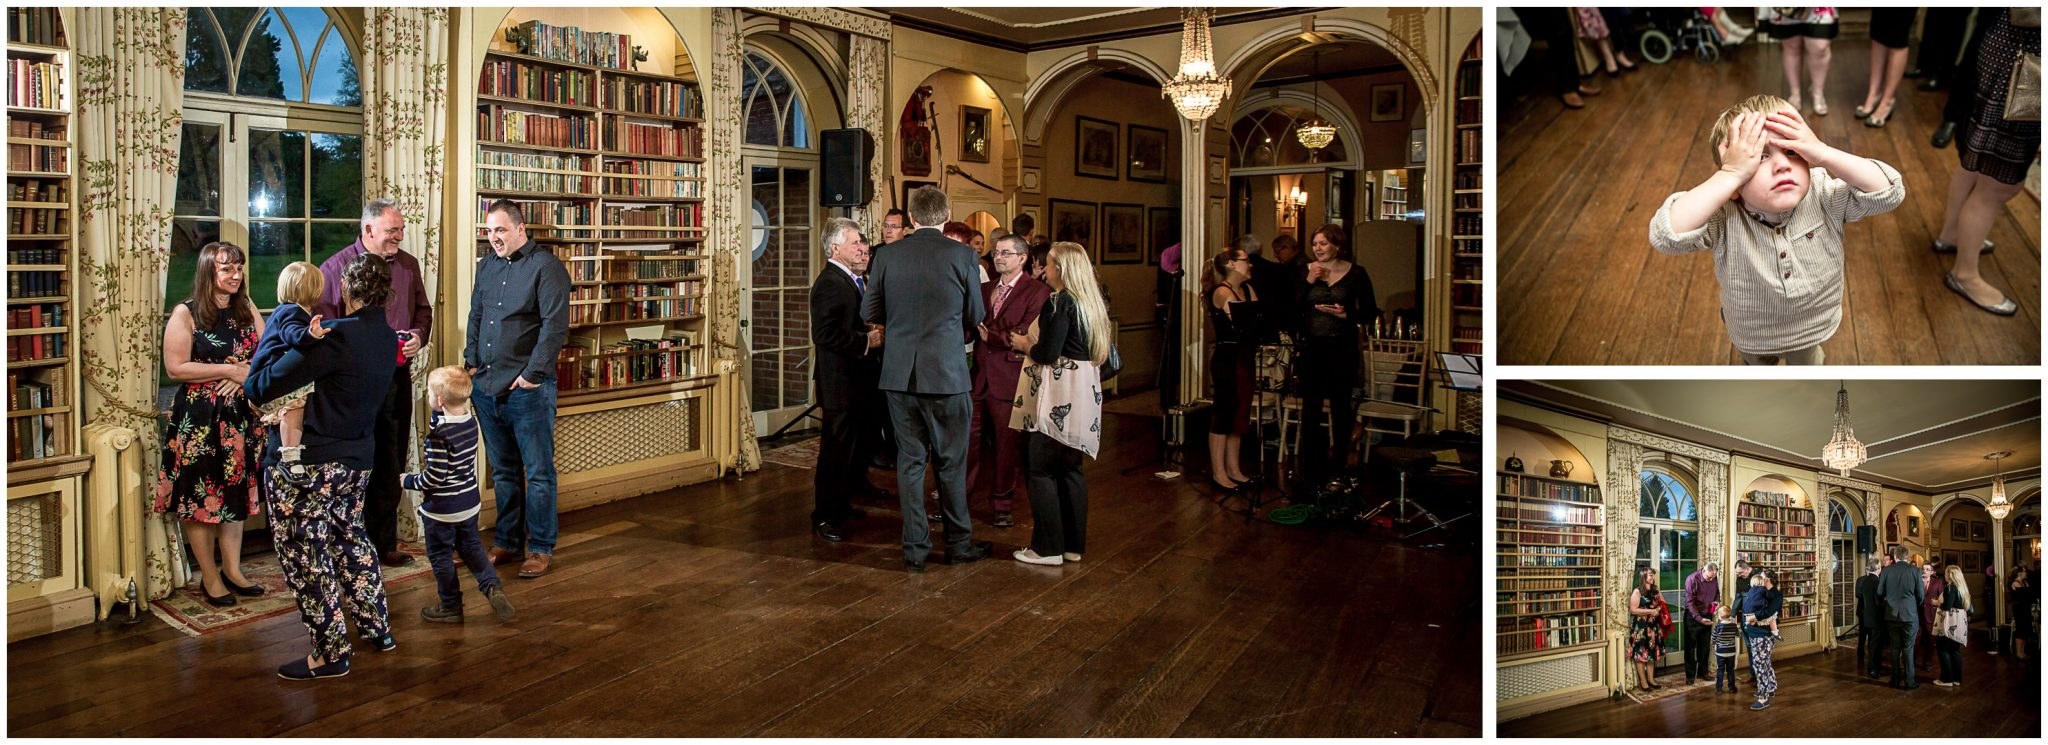 Avington Park wedding photography guests assemble in library